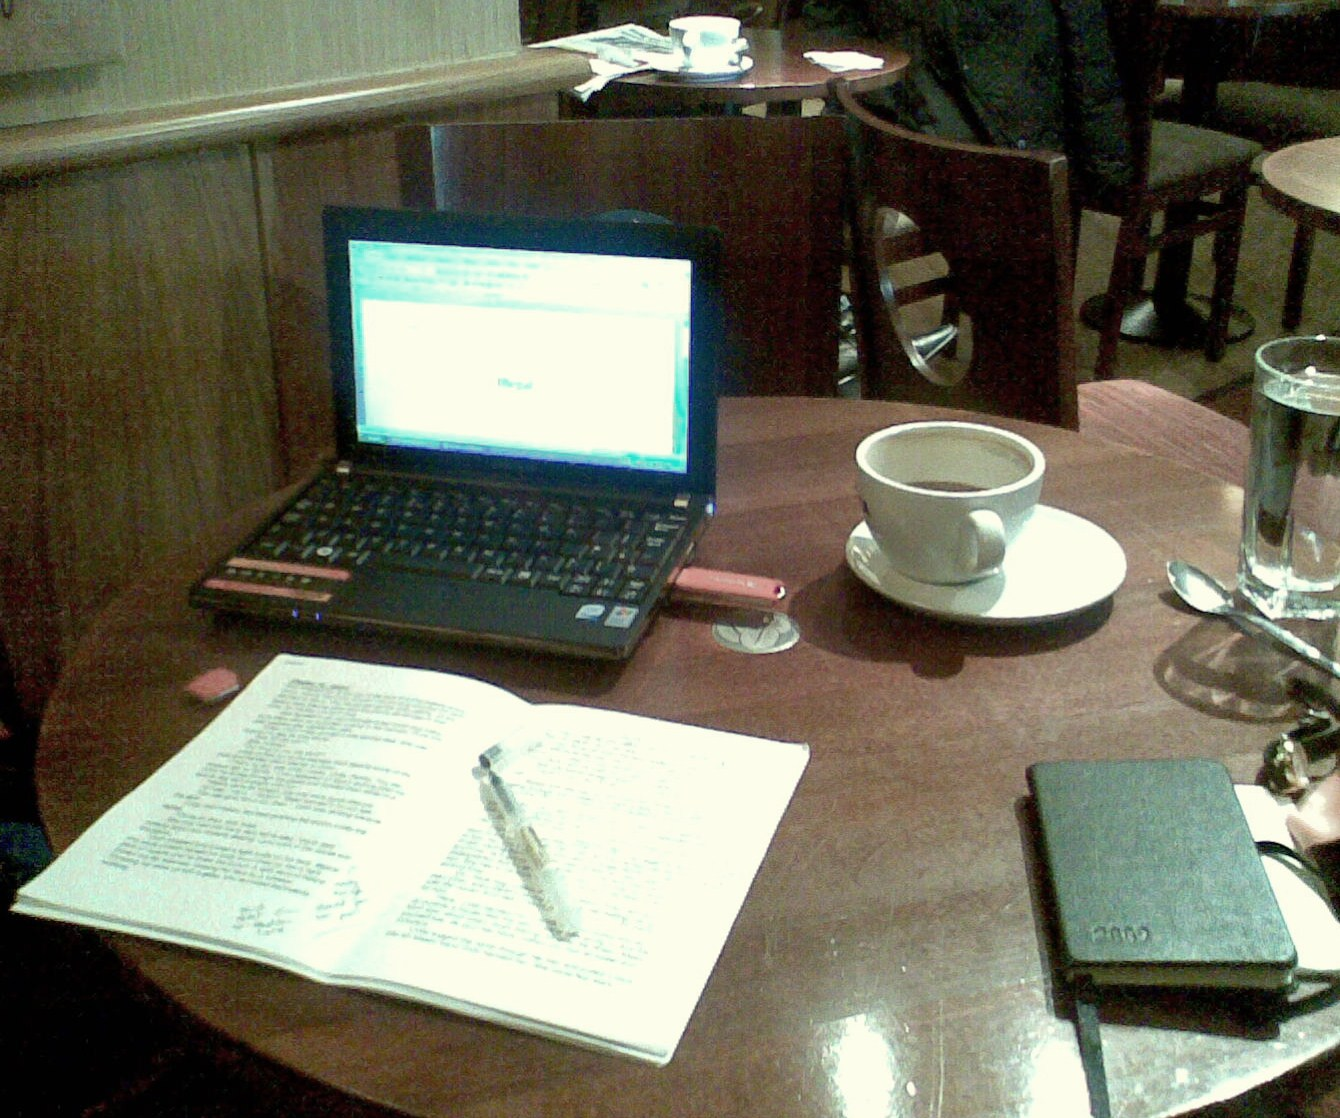 An awfully big blog adventure writing outside the home by miriam my latest find is the costa in covent garden tucked away behind neale street now that really feels like an outing i go early in the morning geotapseo Gallery